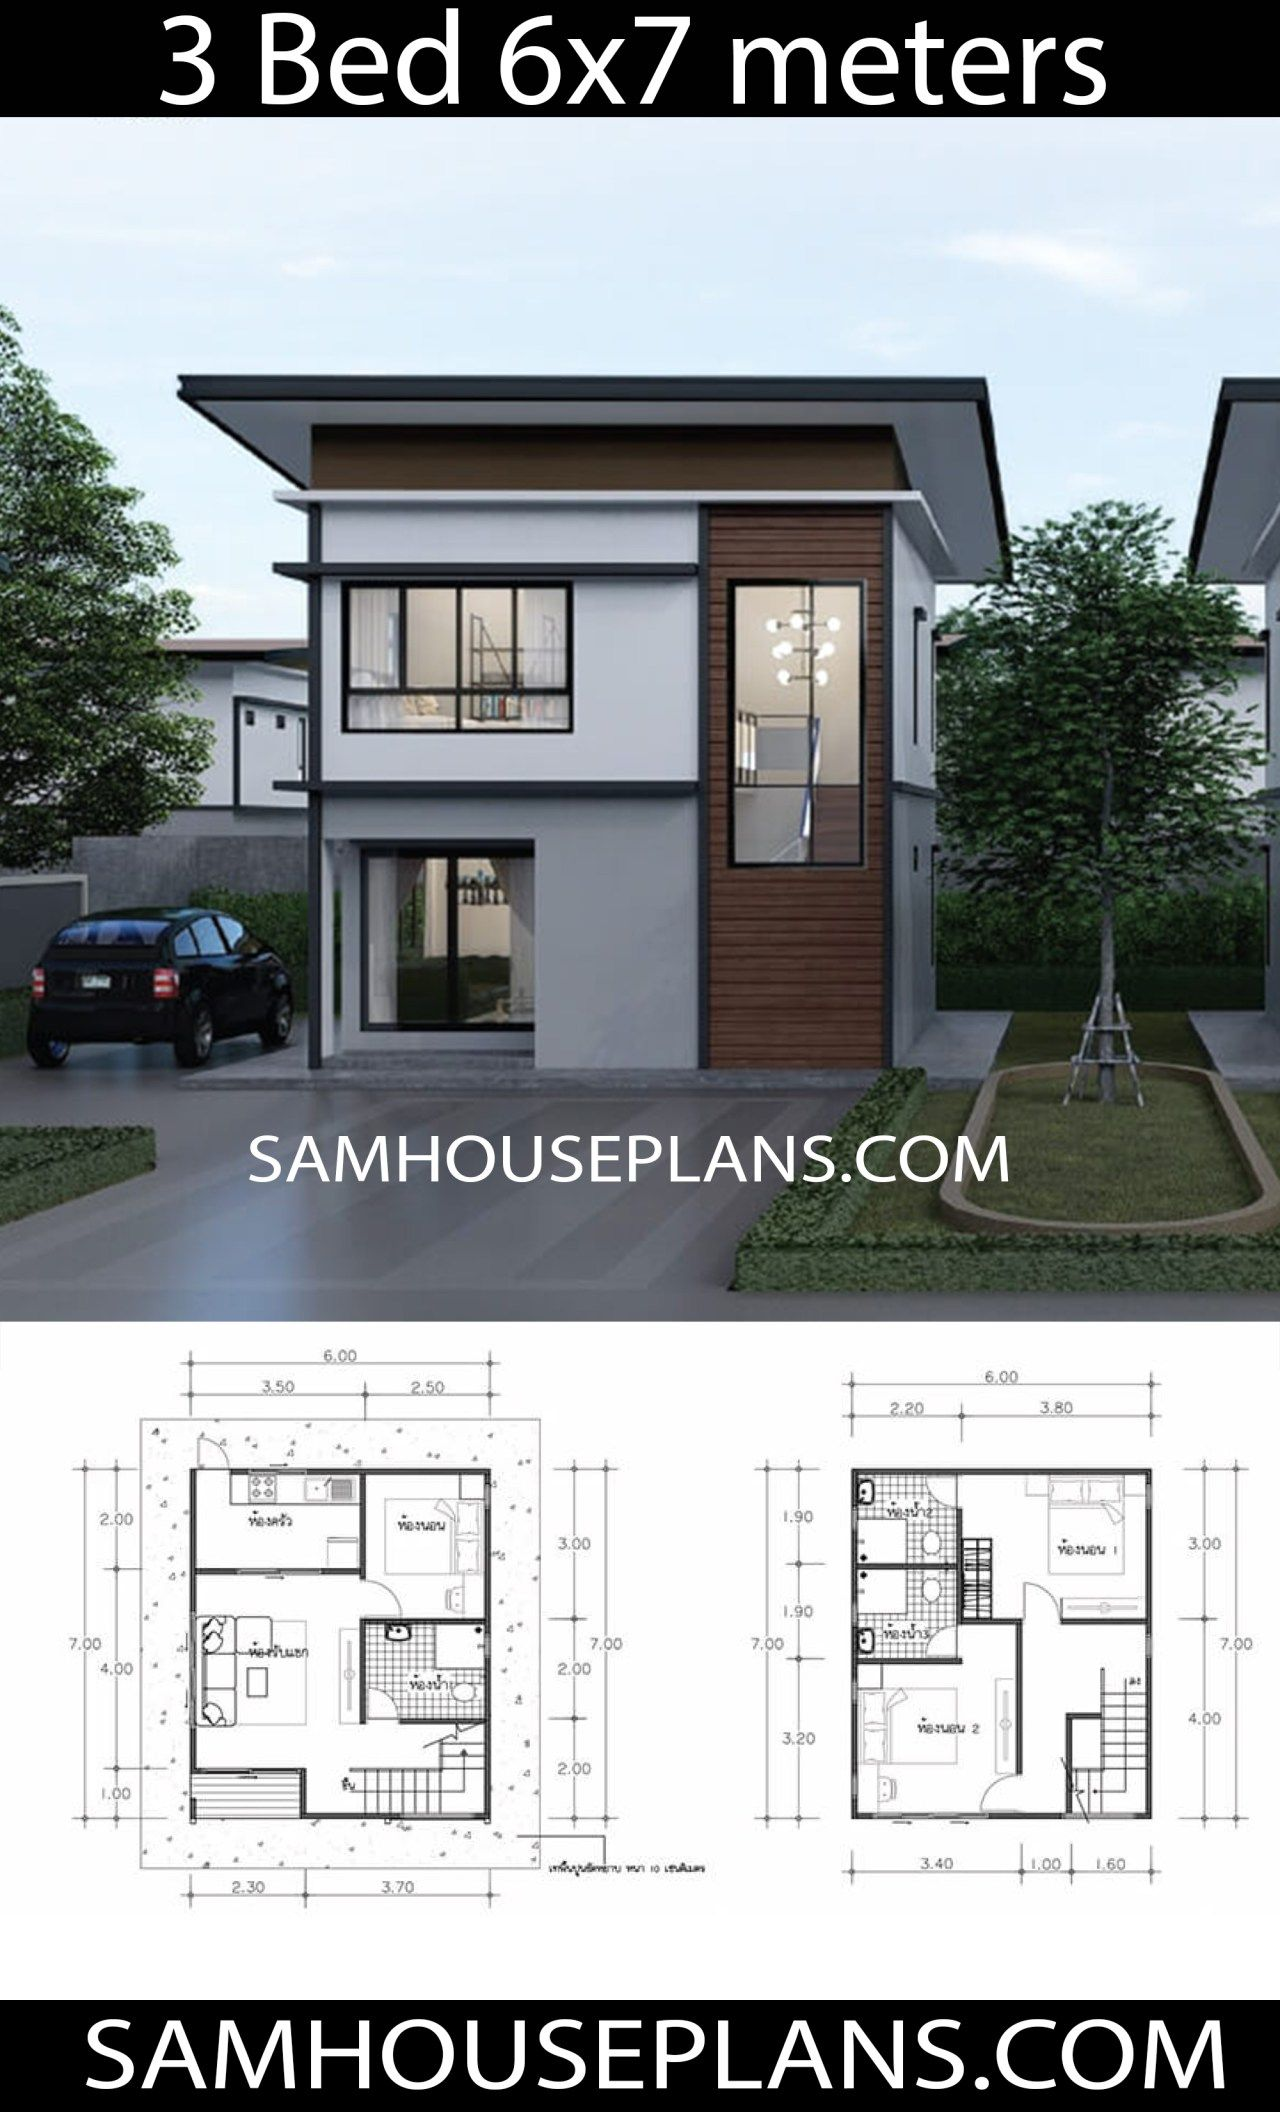 House Plans Idea 6x7 With 3 Bedrooms House Plans Bedroom House Plans 1 Bedroom House Plans